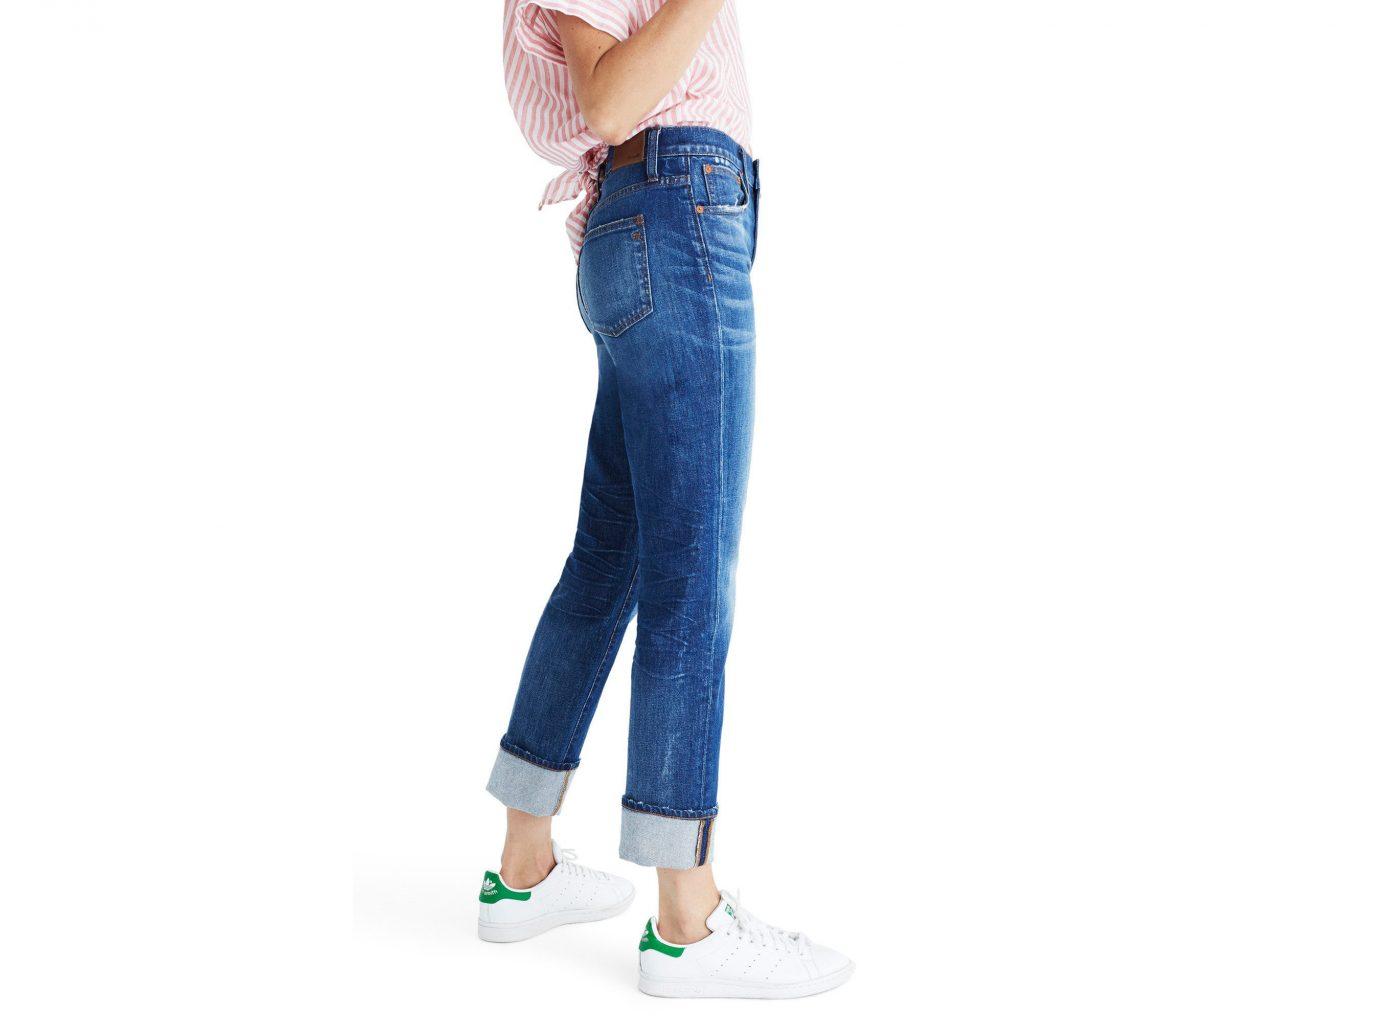 Style + Design person jeans denim standing wearing electric blue waist joint trousers human leg trouser shoe abdomen